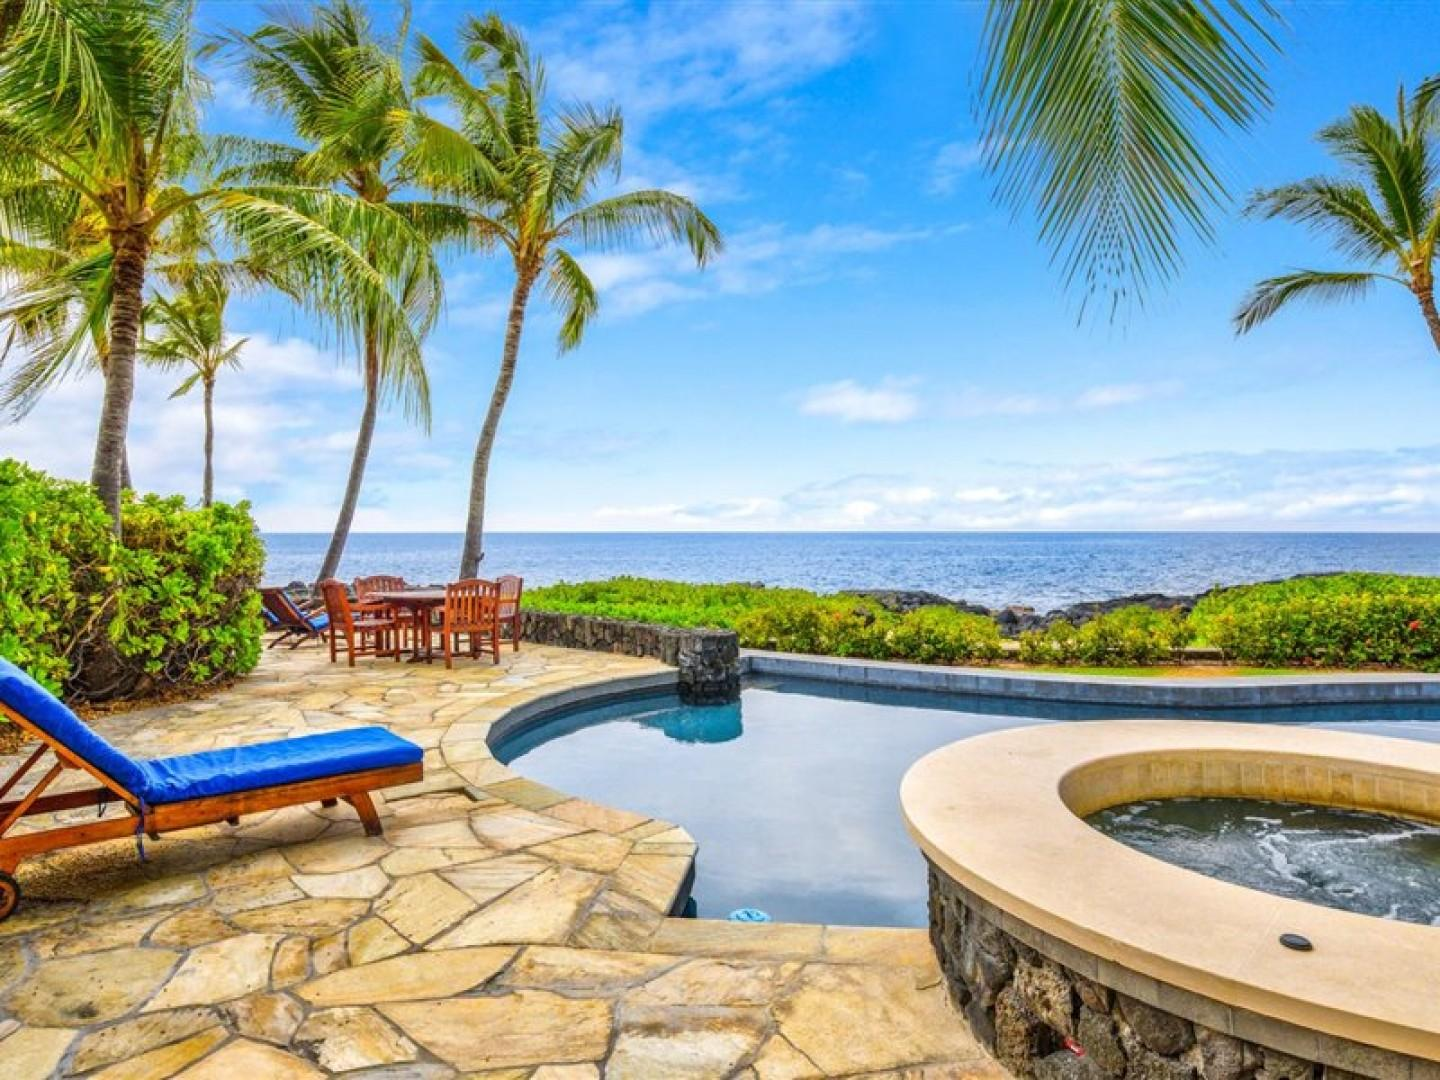 No better place imaginable to take in what the Big Island has to offer!